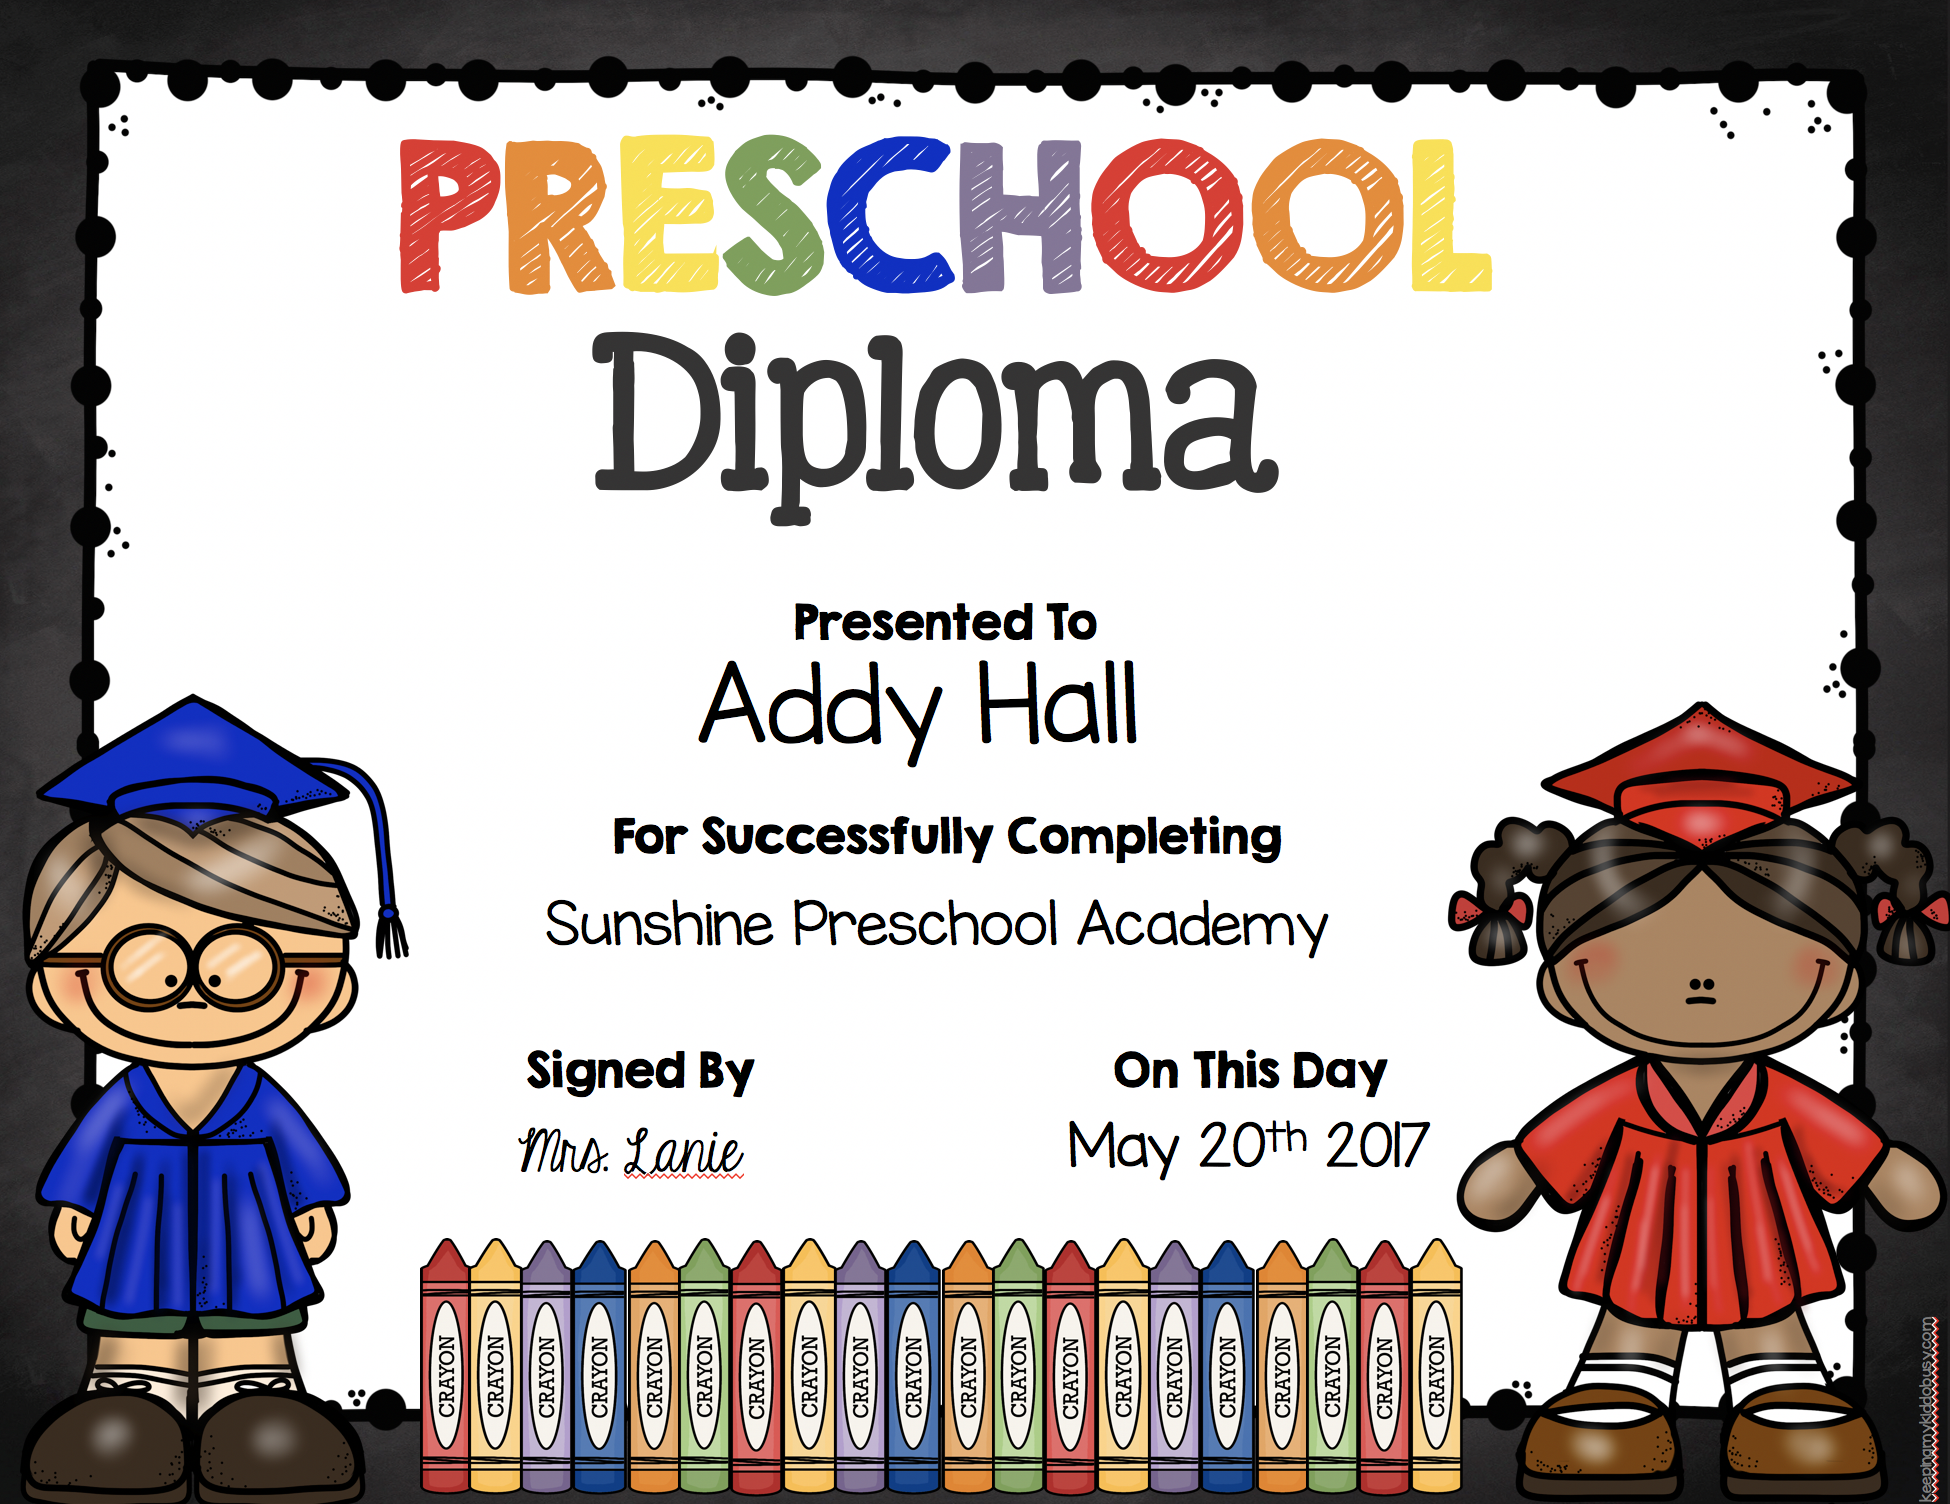 50 Off Sale Preschool Diploma Graduation Printable Etsy In 2021 Kindergarten Diploma Kindergarten Graduation Ceremony Preschool Diploma